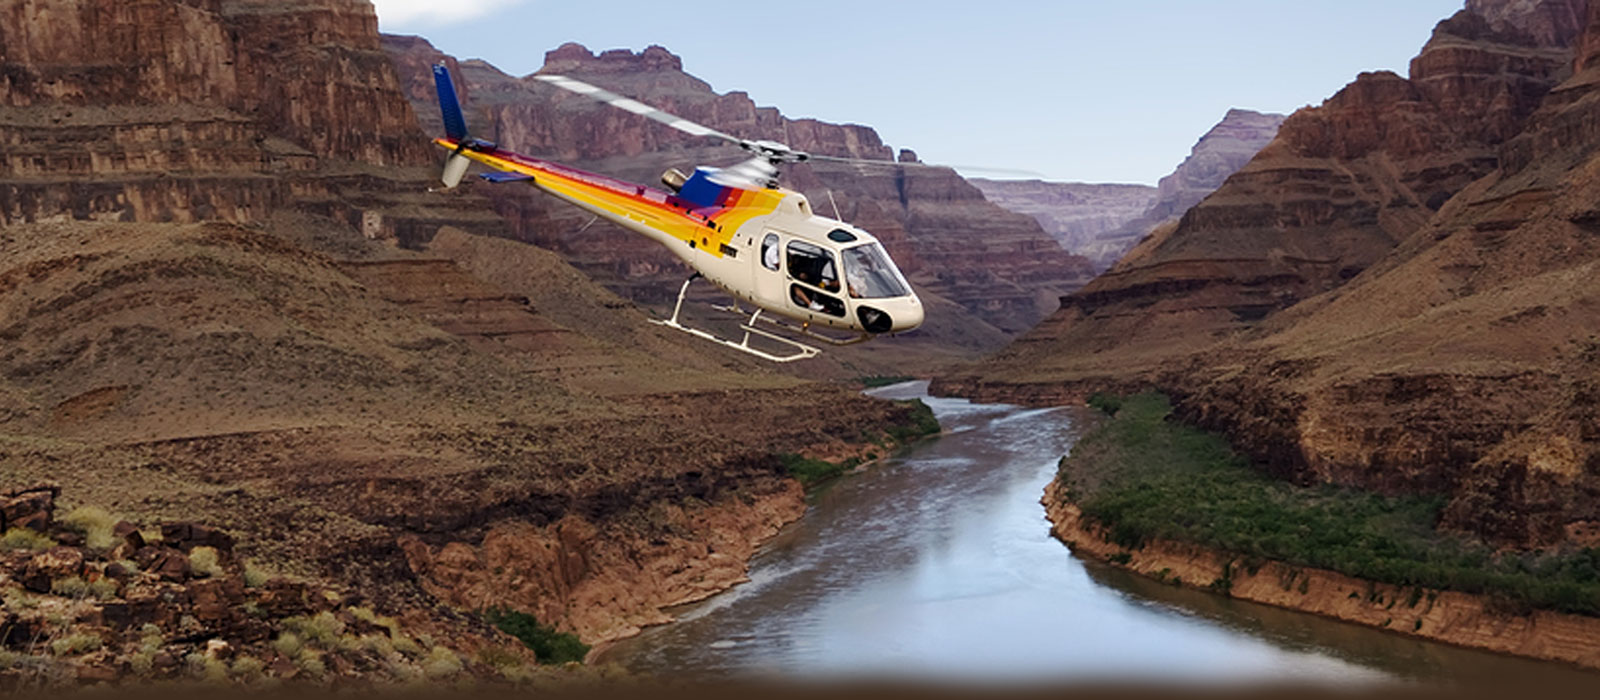 Grand Canyon Backgrounds, Compatible - PC, Mobile, Gadgets| 1600x700 px